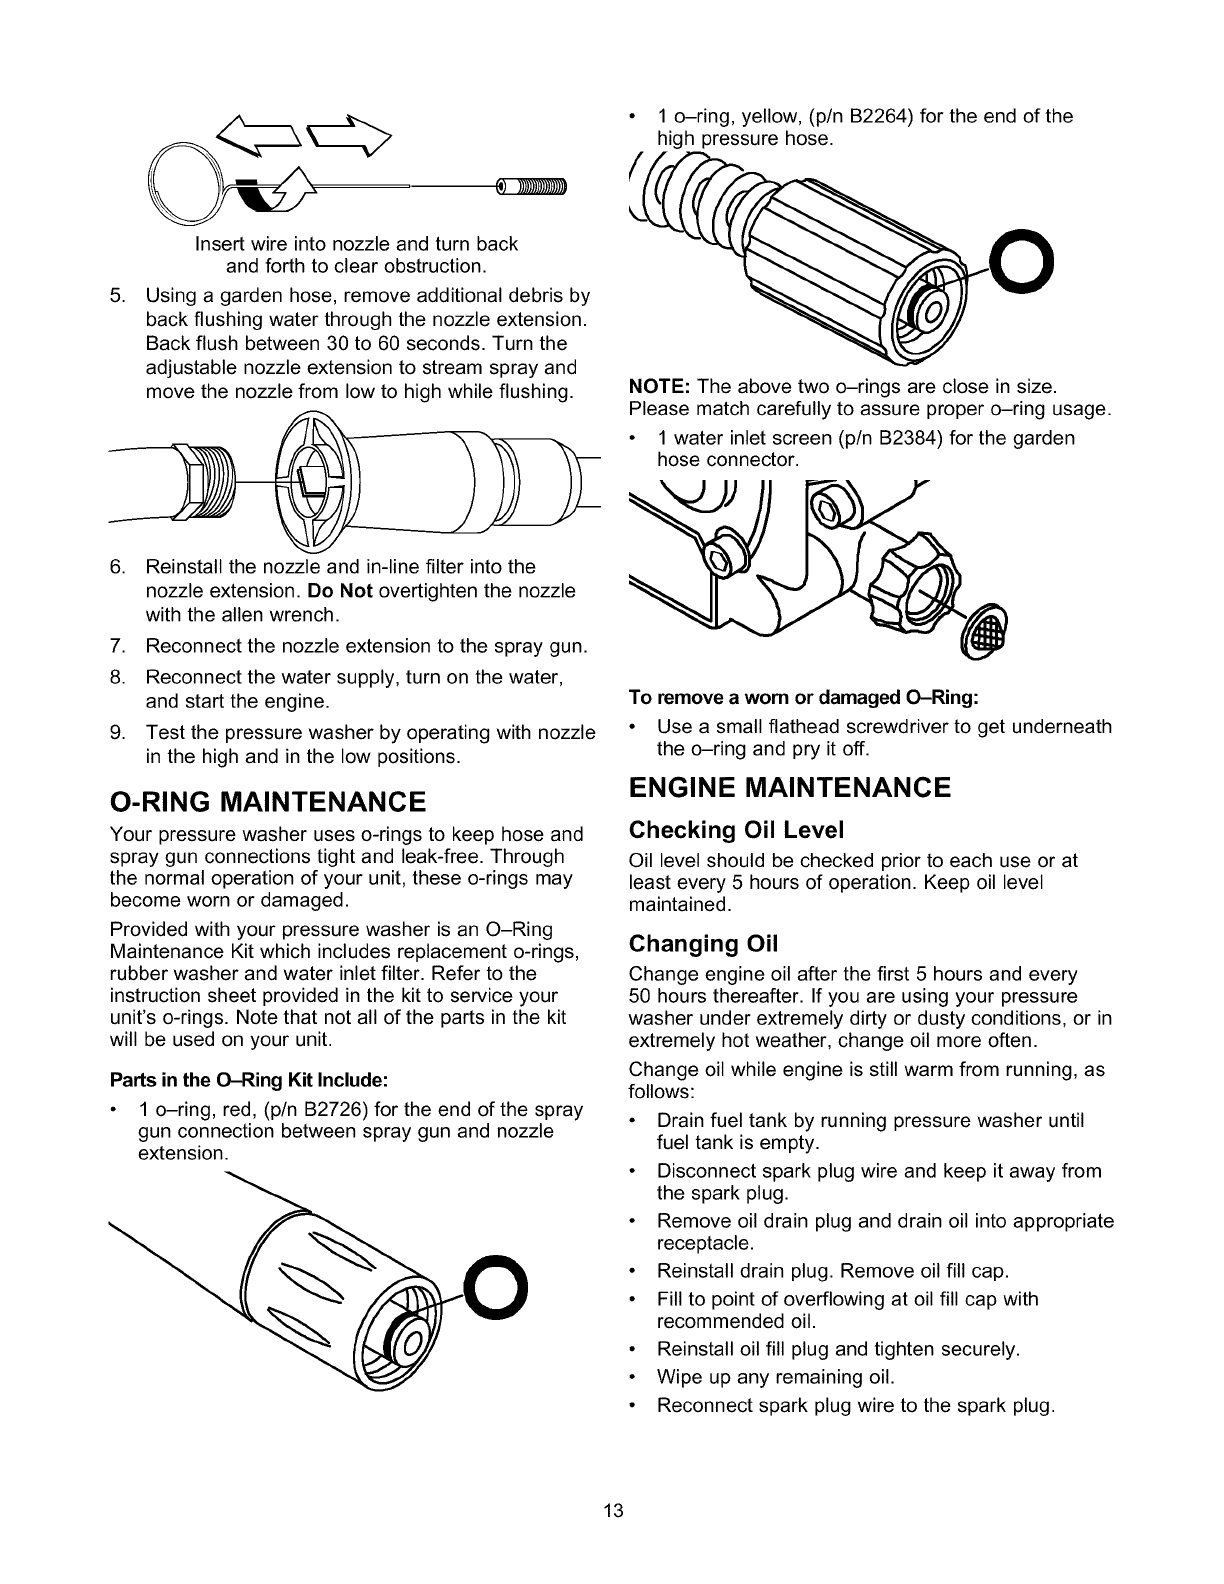 Craftsman 580767301 User Manual Pressure Washer Manuals And Guides Ring Flat Baja M8 Insert Wire Into Nozzle Turn Back